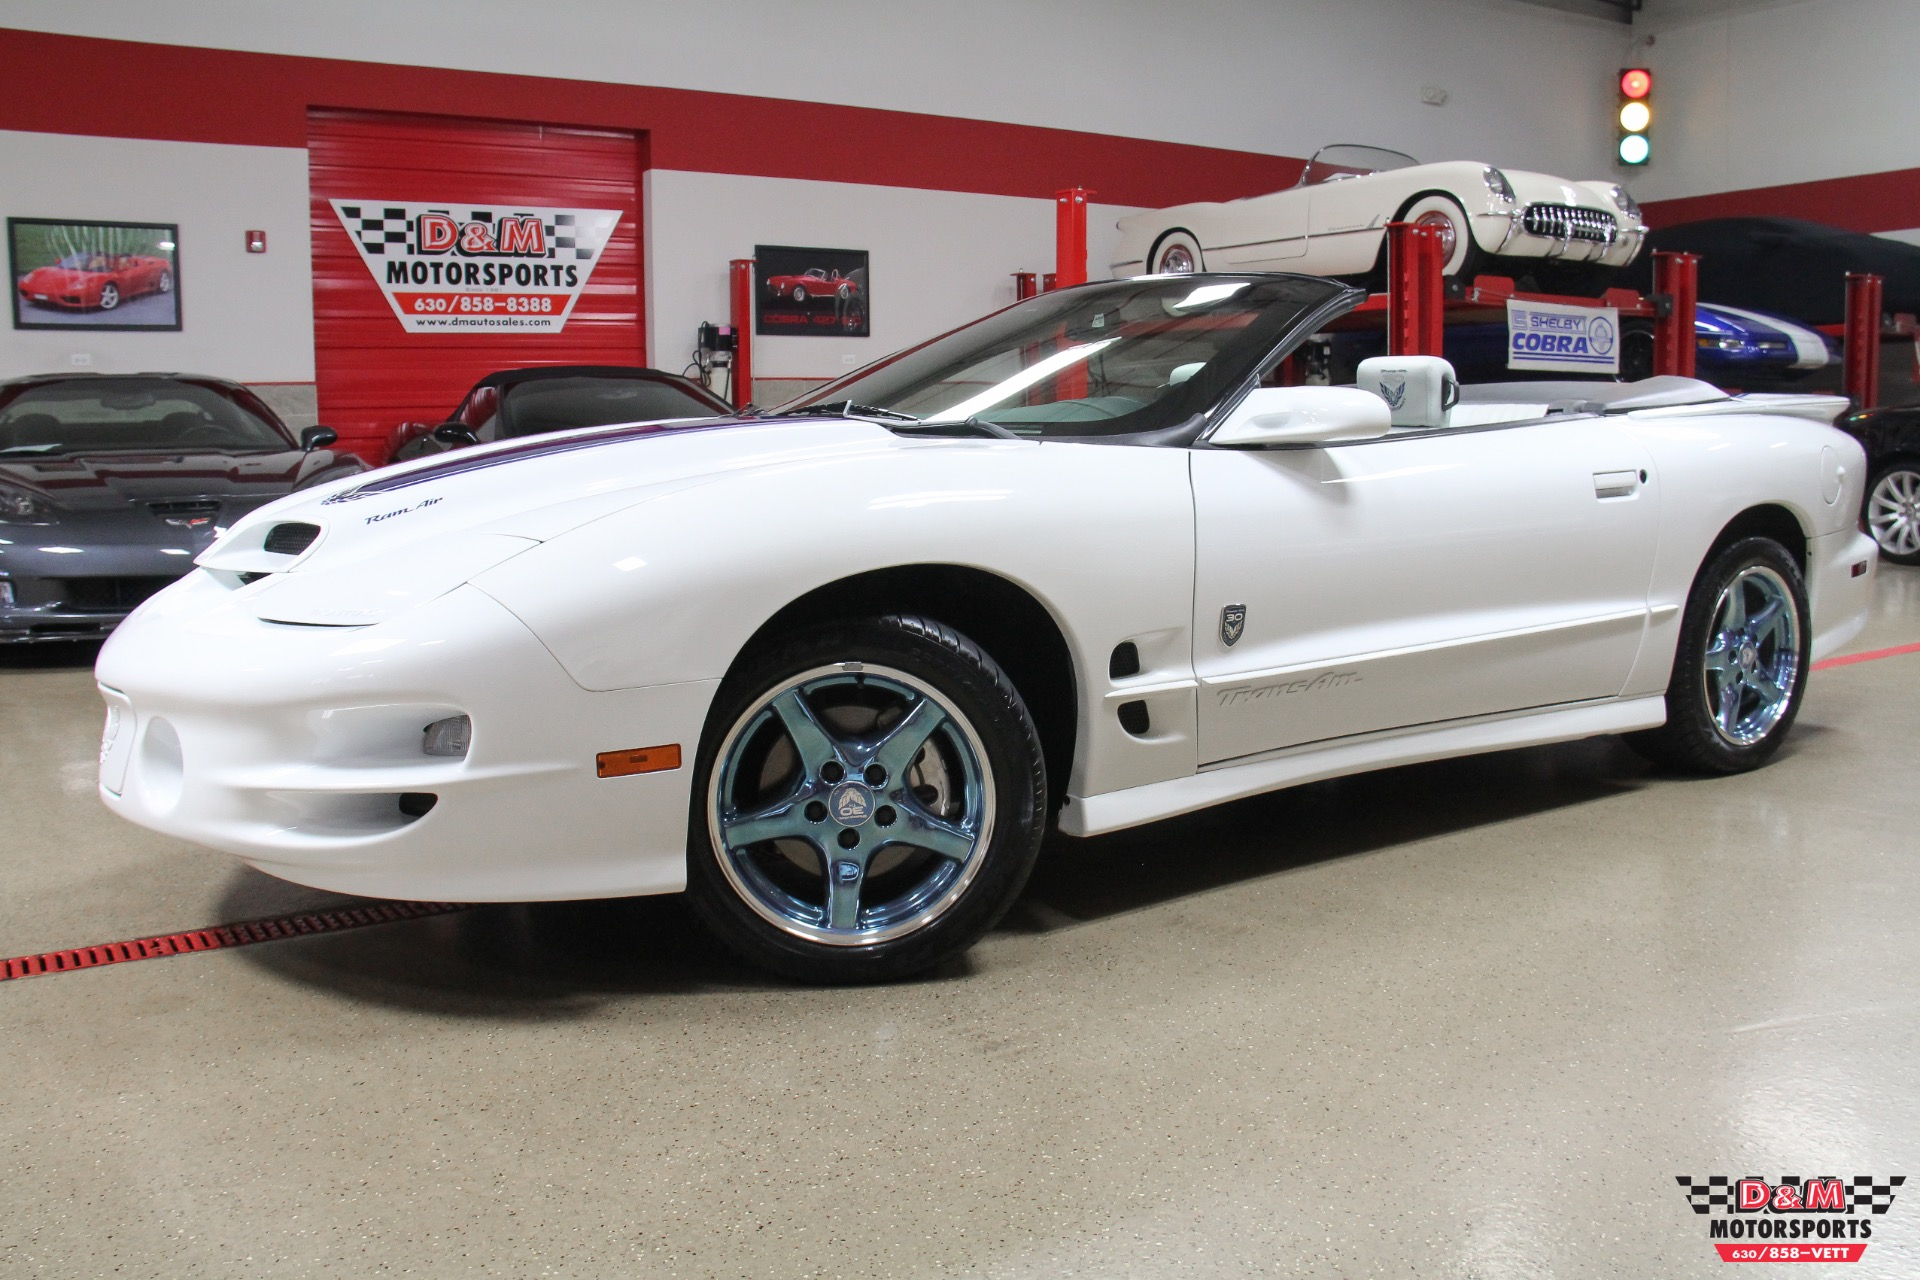 1999 pontiac firebird trans am ws6 30th anniversary convertible stock m6375 for sale near glen. Black Bedroom Furniture Sets. Home Design Ideas